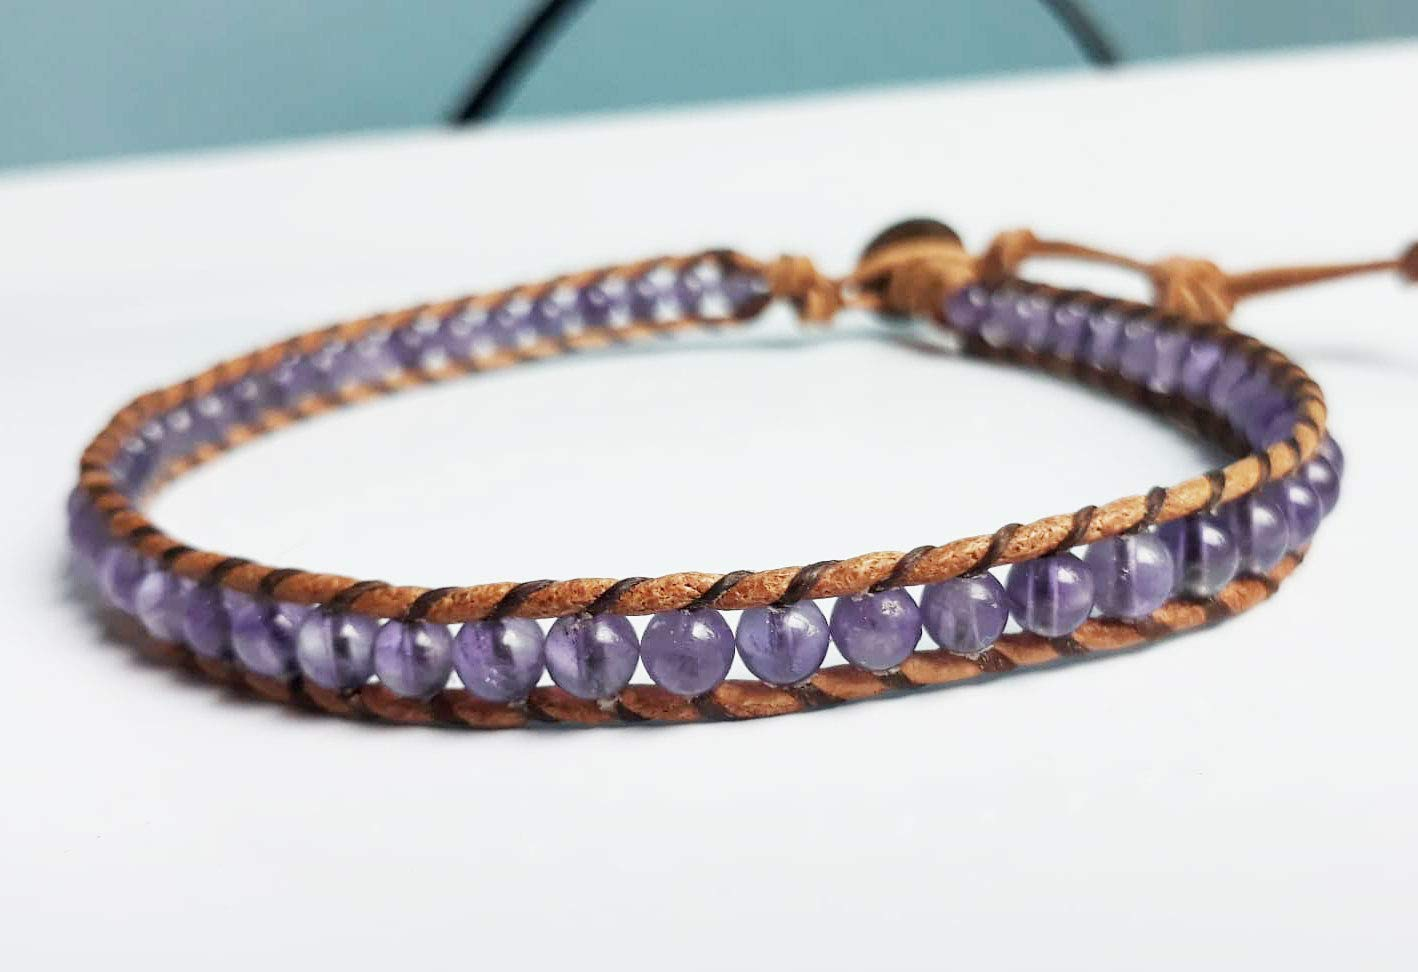 Amethyst stone anklets leather anklets men anklets women anklets gift anklets boy anklets girl anklets friendship anklets